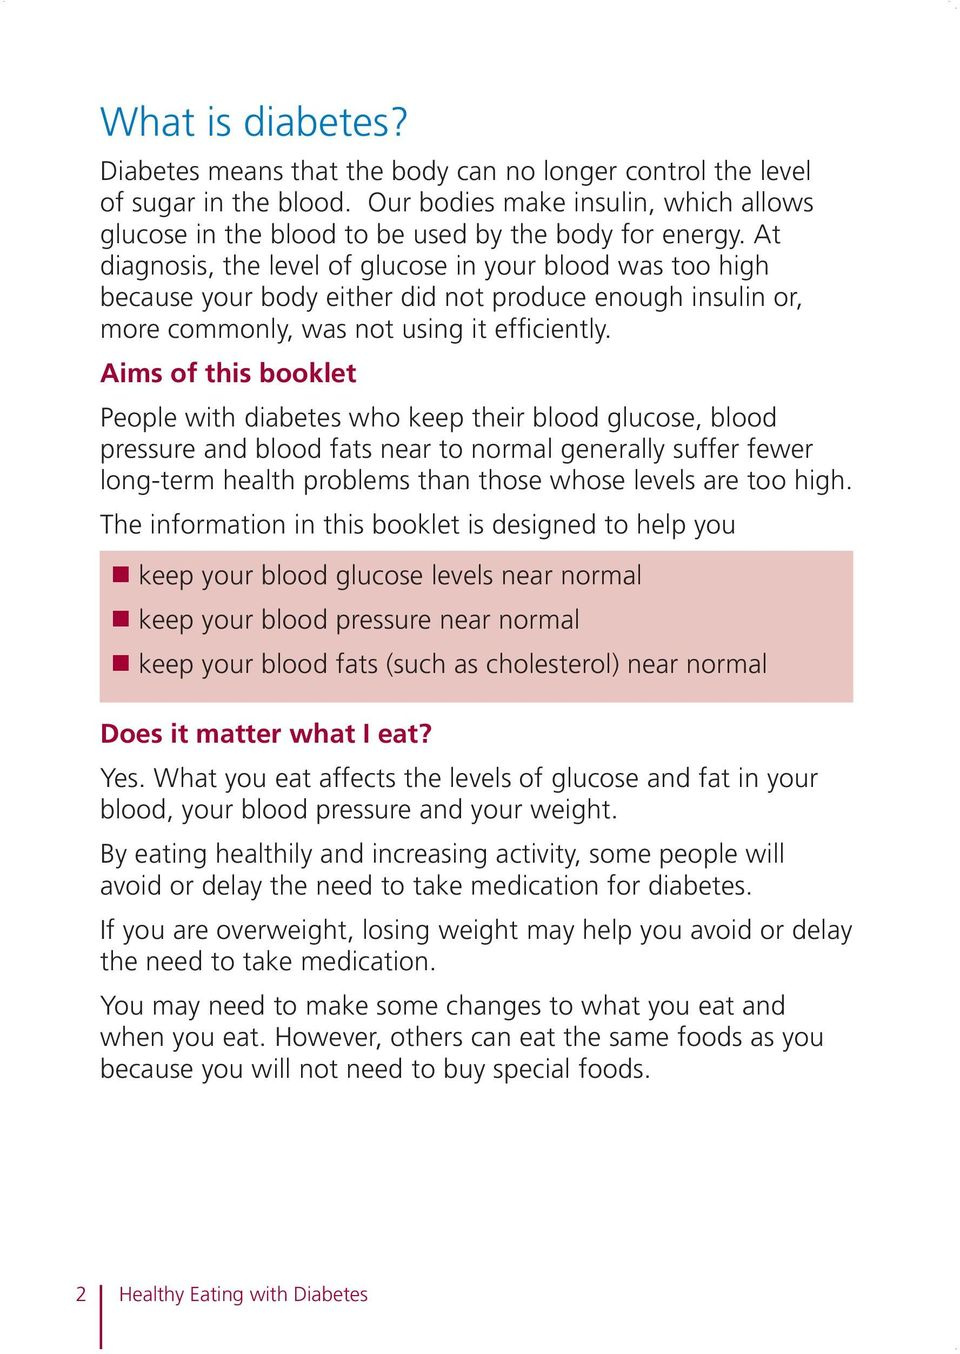 Aims of this booklet People with diabetes who keep their blood glucose, blood pressure and blood fats near to normal generally suffer fewer long-term health problems than those whose levels are too